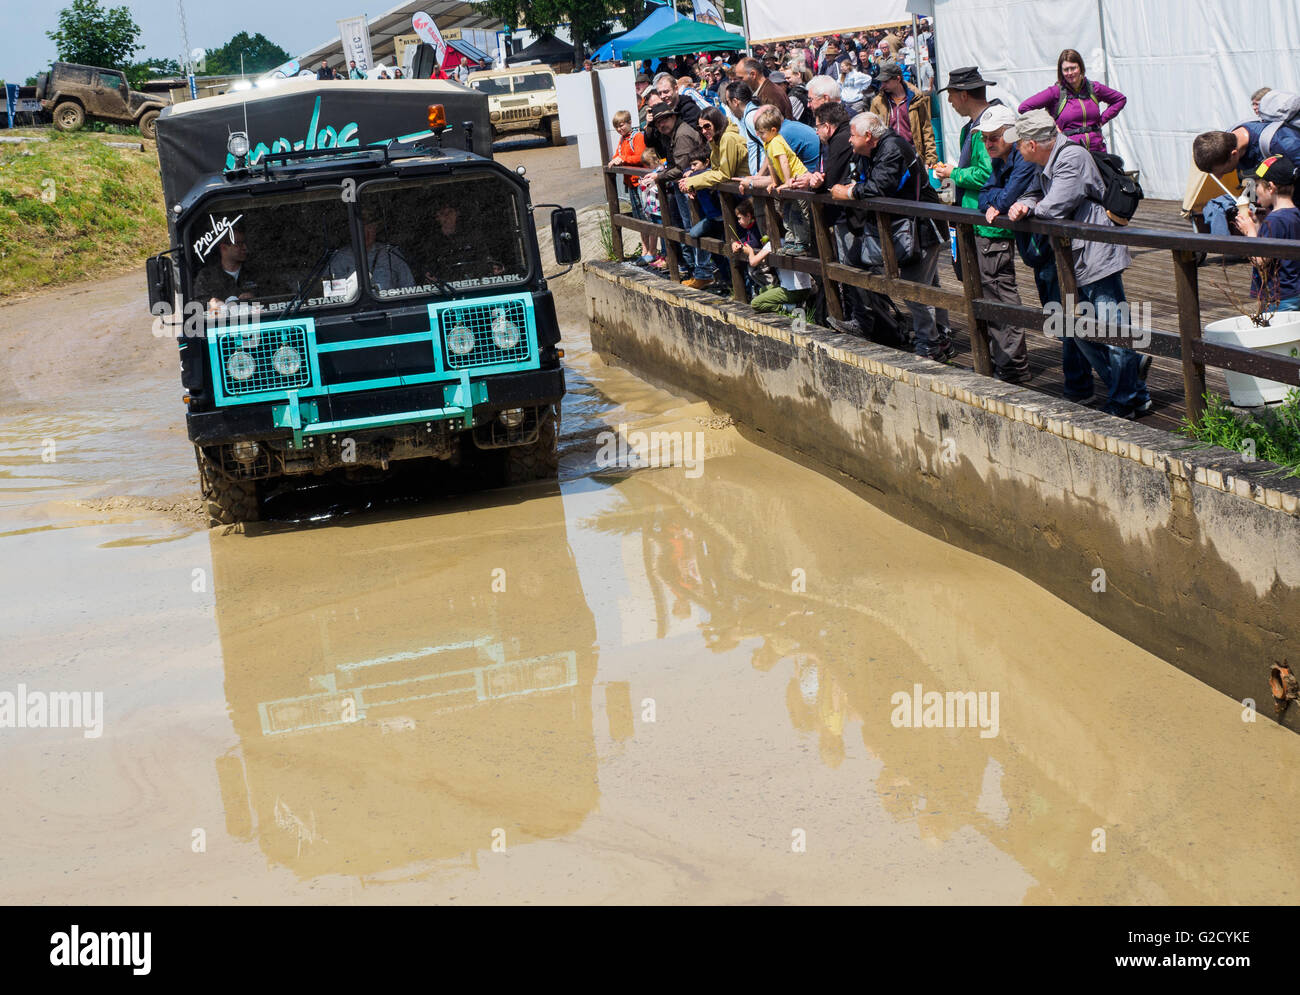 An expedition vehicle based on a MAN vehicle can be seen at the off-road fair in Bad Kissingen, Germany, 27 May - Stock Image